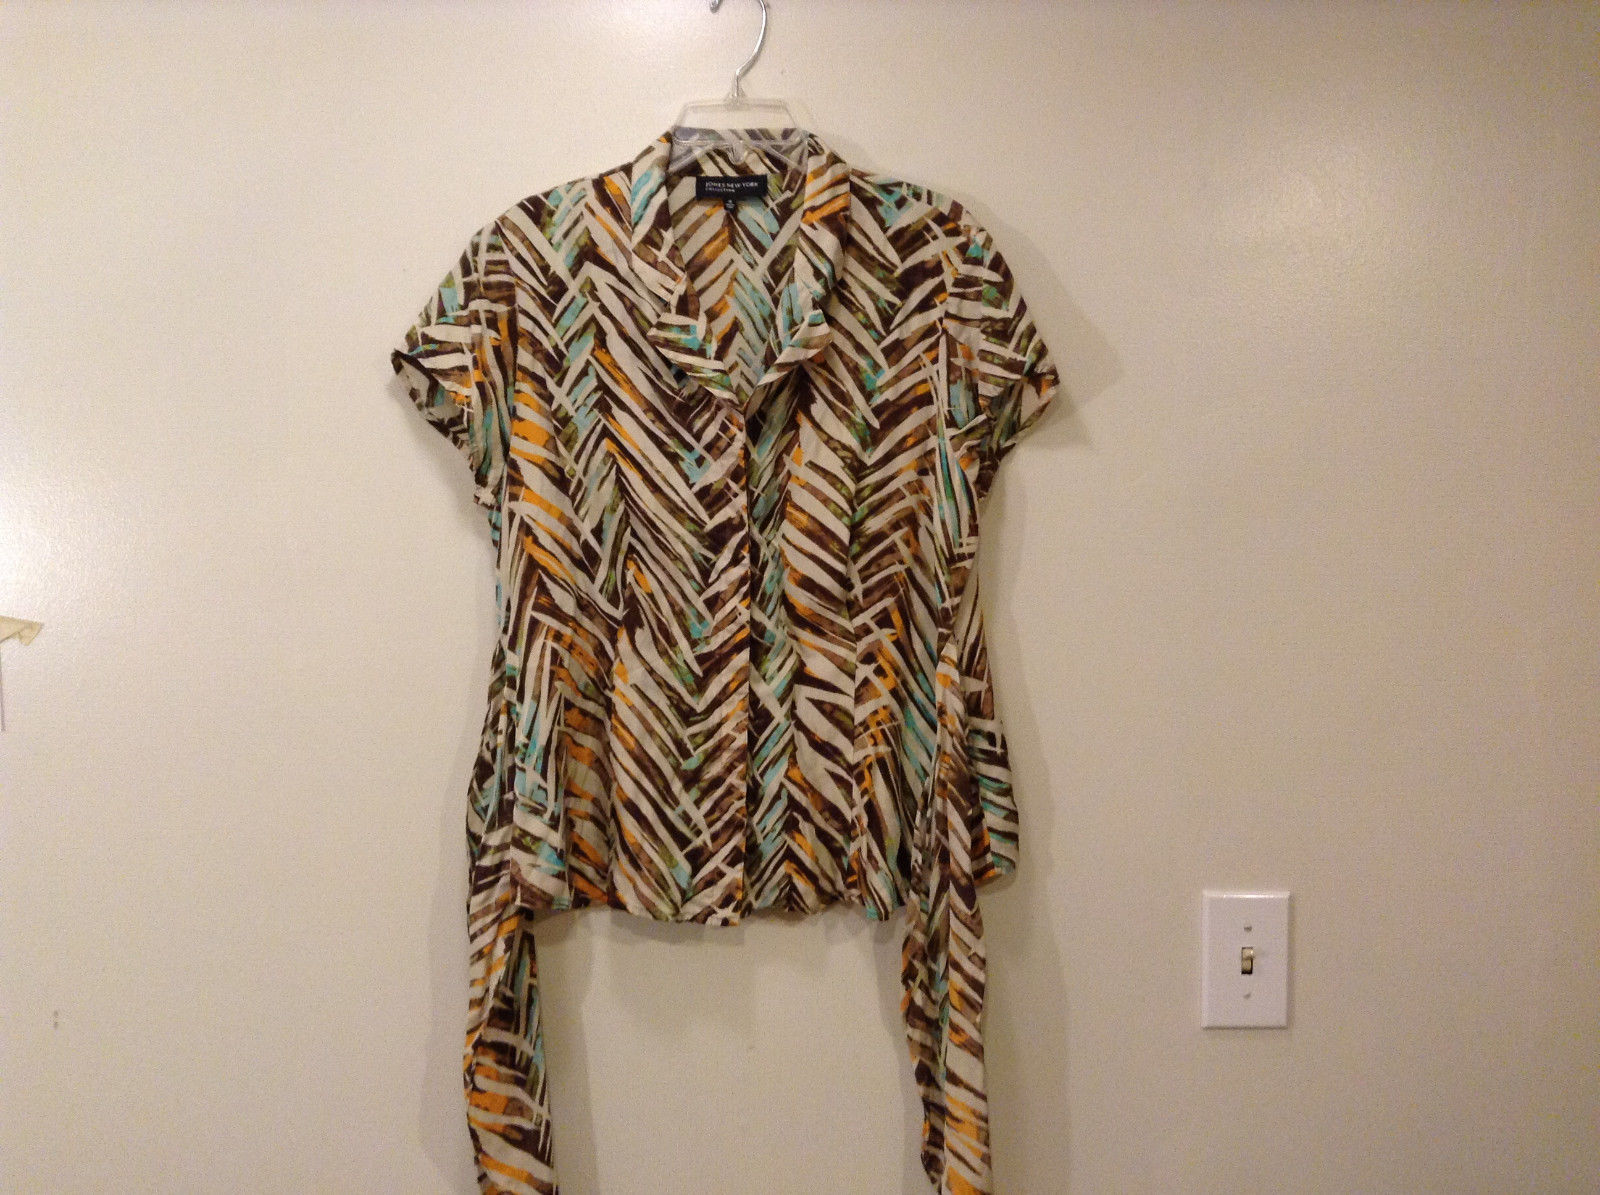 Jones New York Women's Size 16 Silk Blend Shirt Multi Color Paint Print w/ Sash